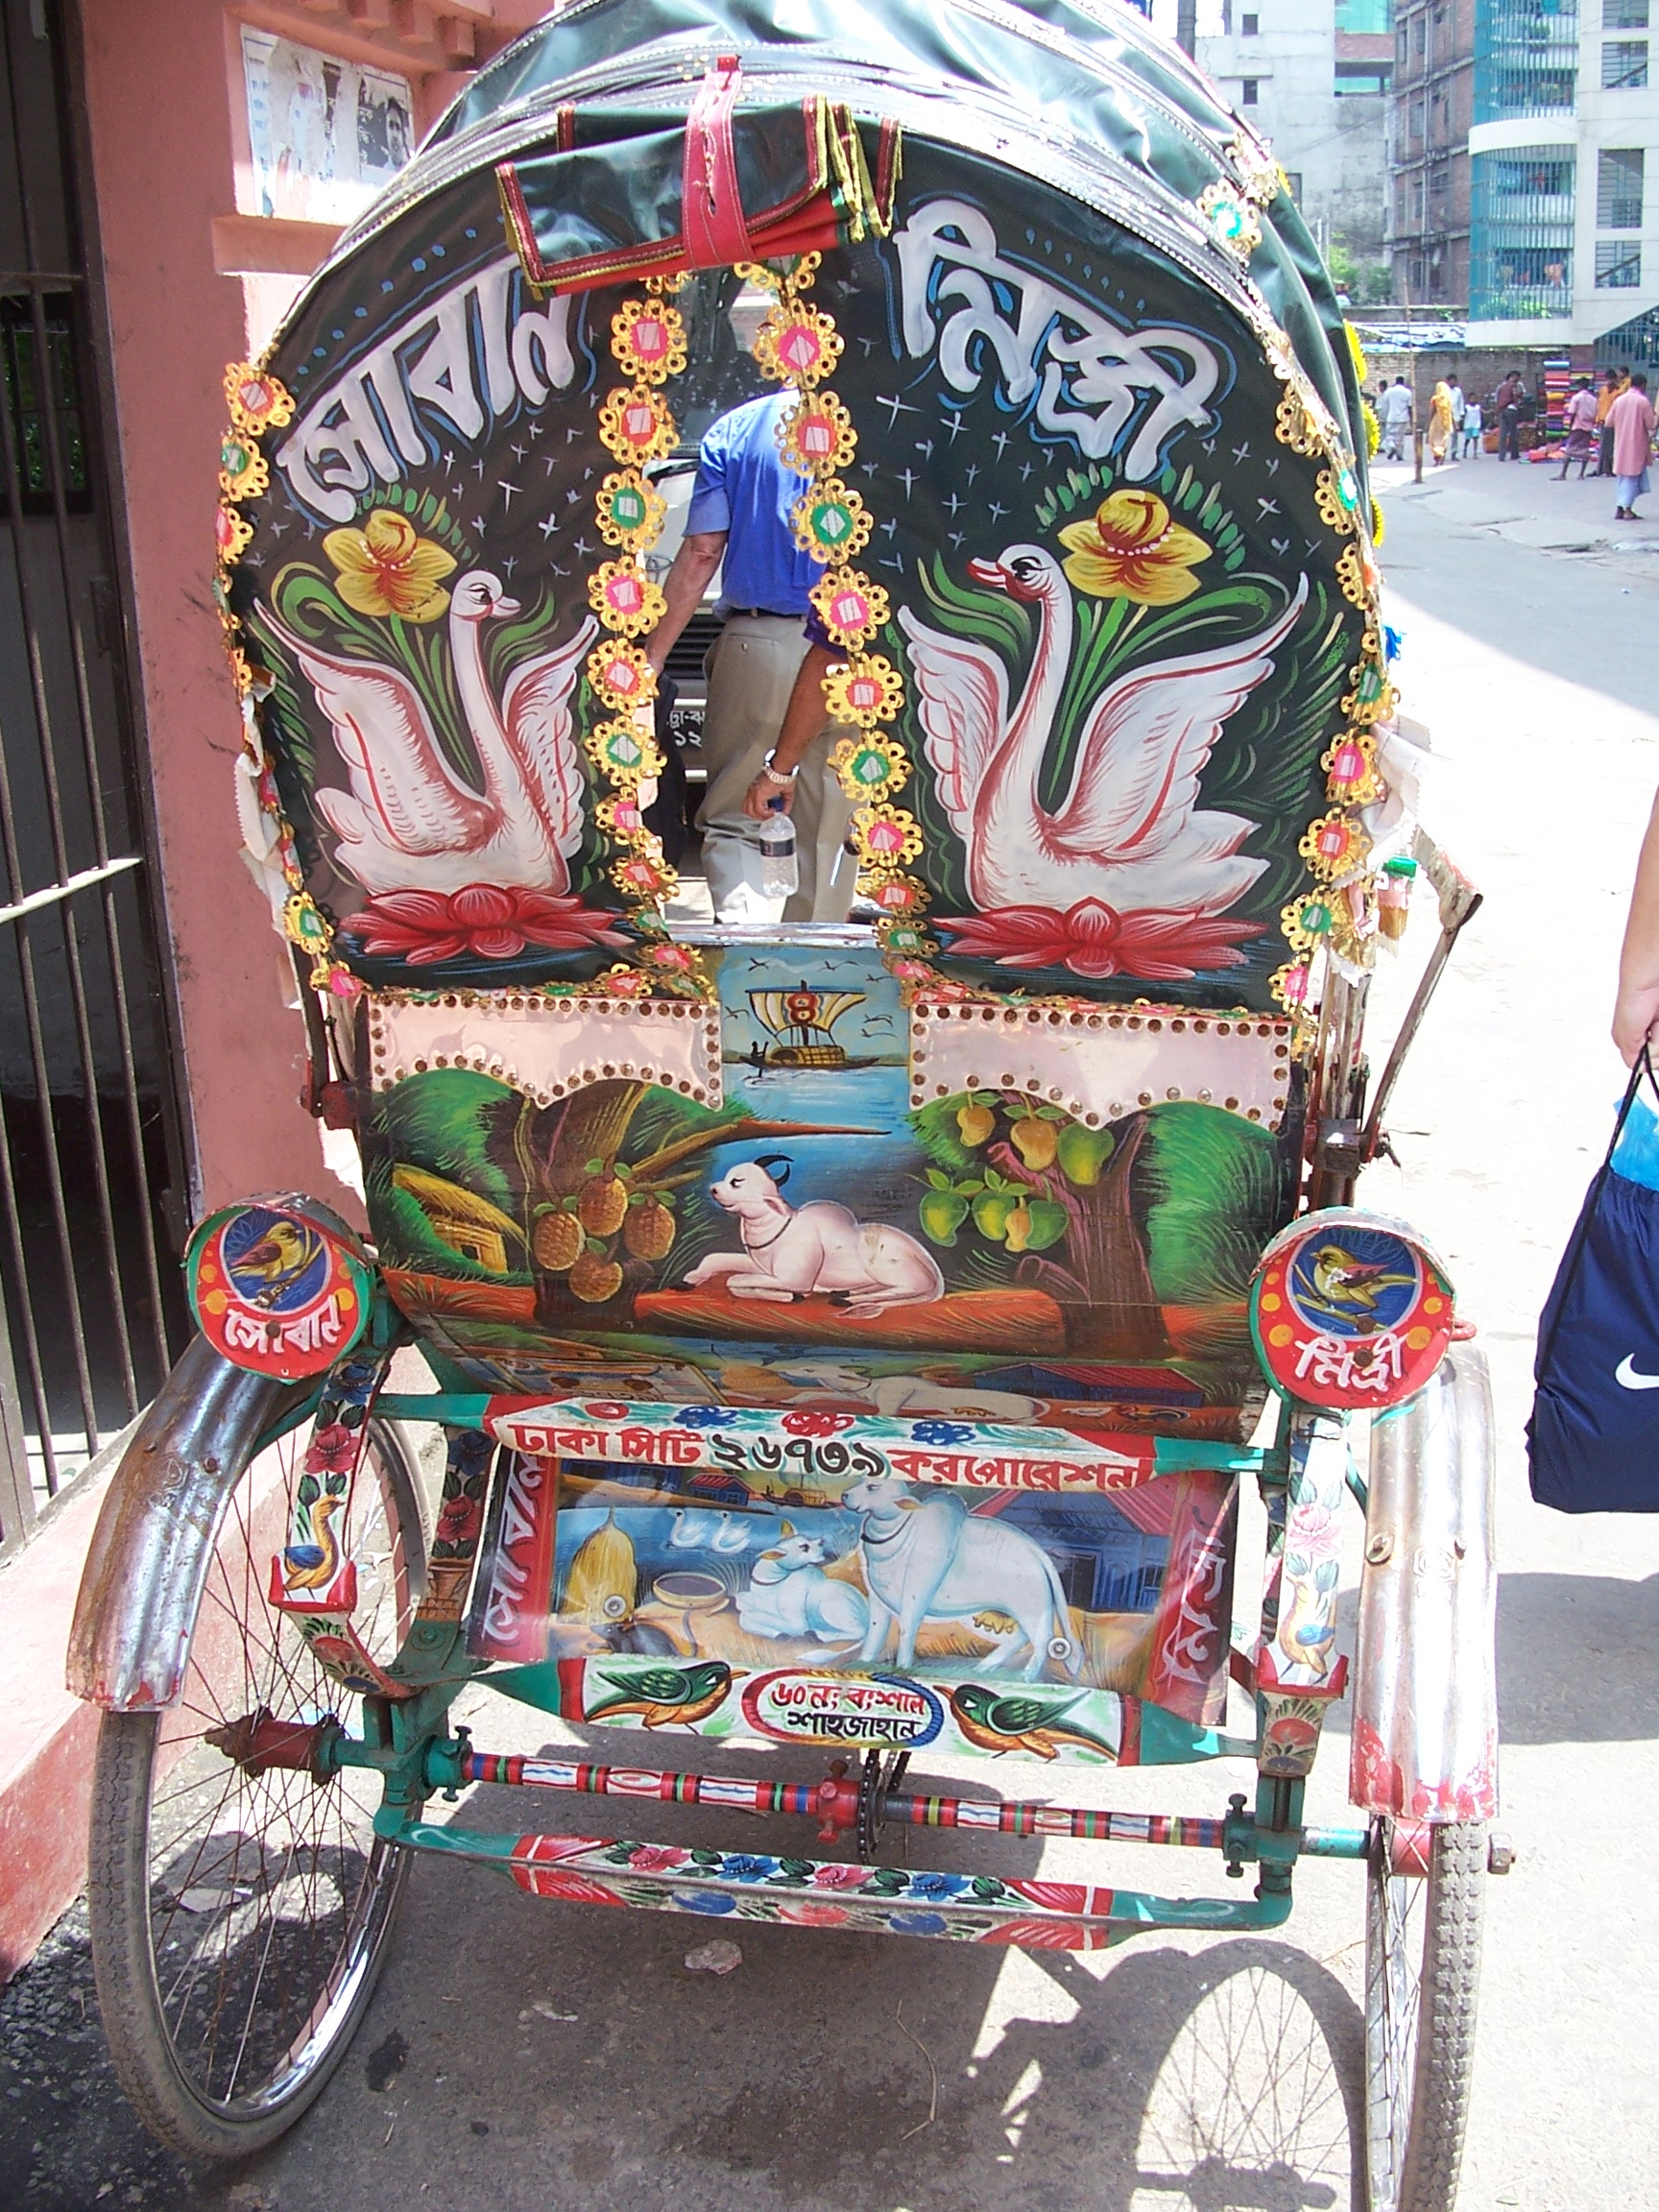 The back of an elaborately decorated bike cart